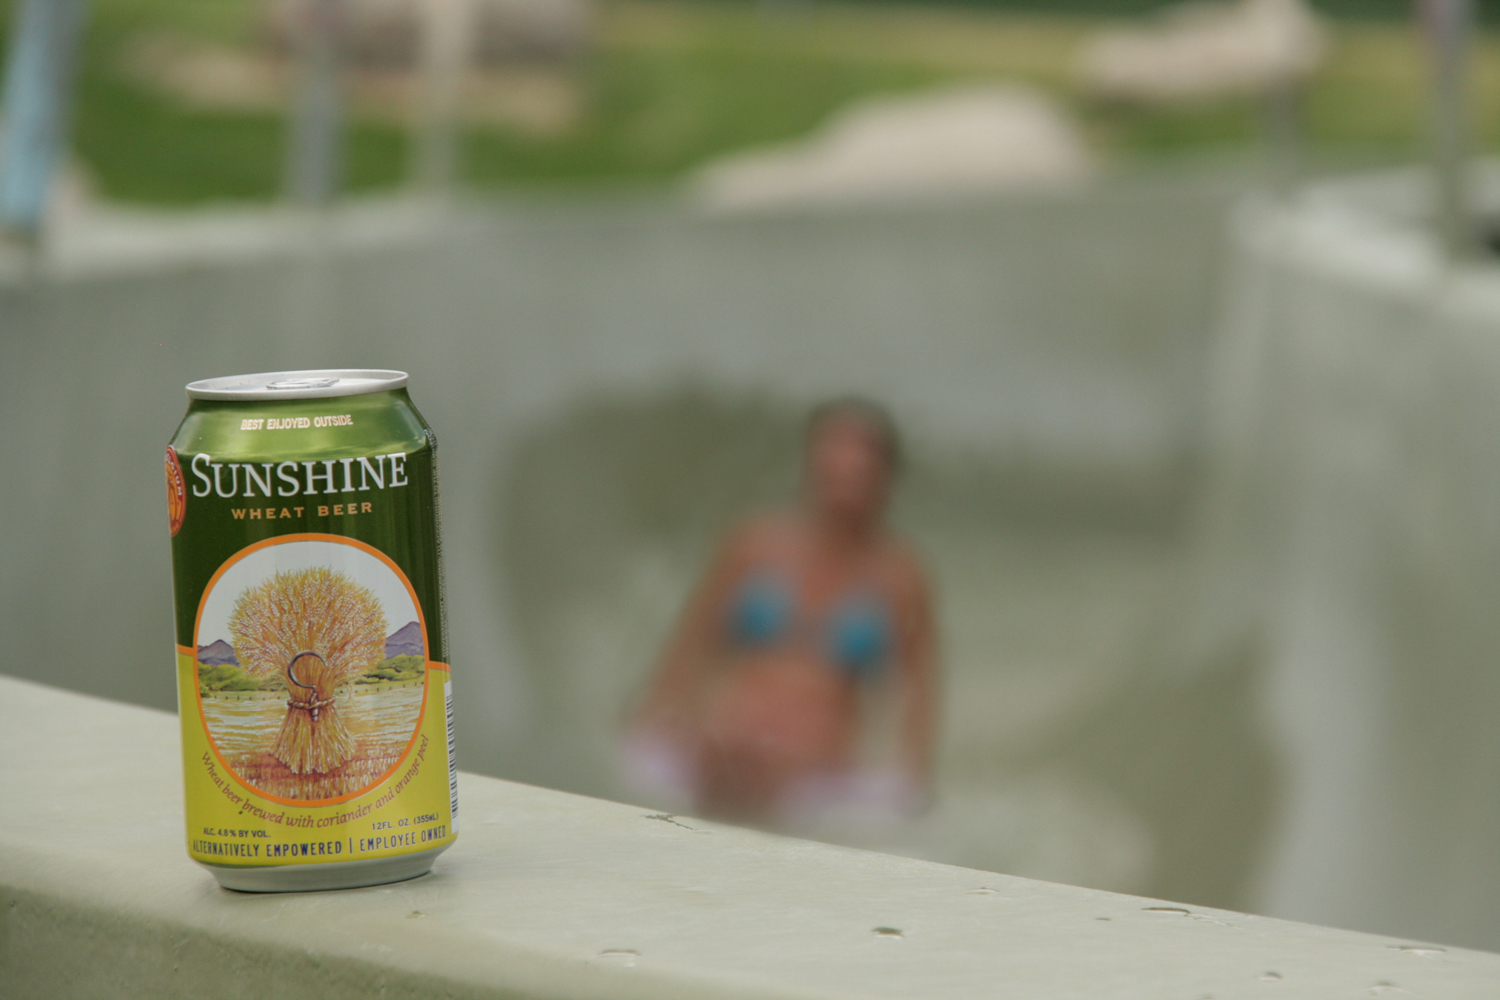 Sunshine summer beer is one of the best summer beers.